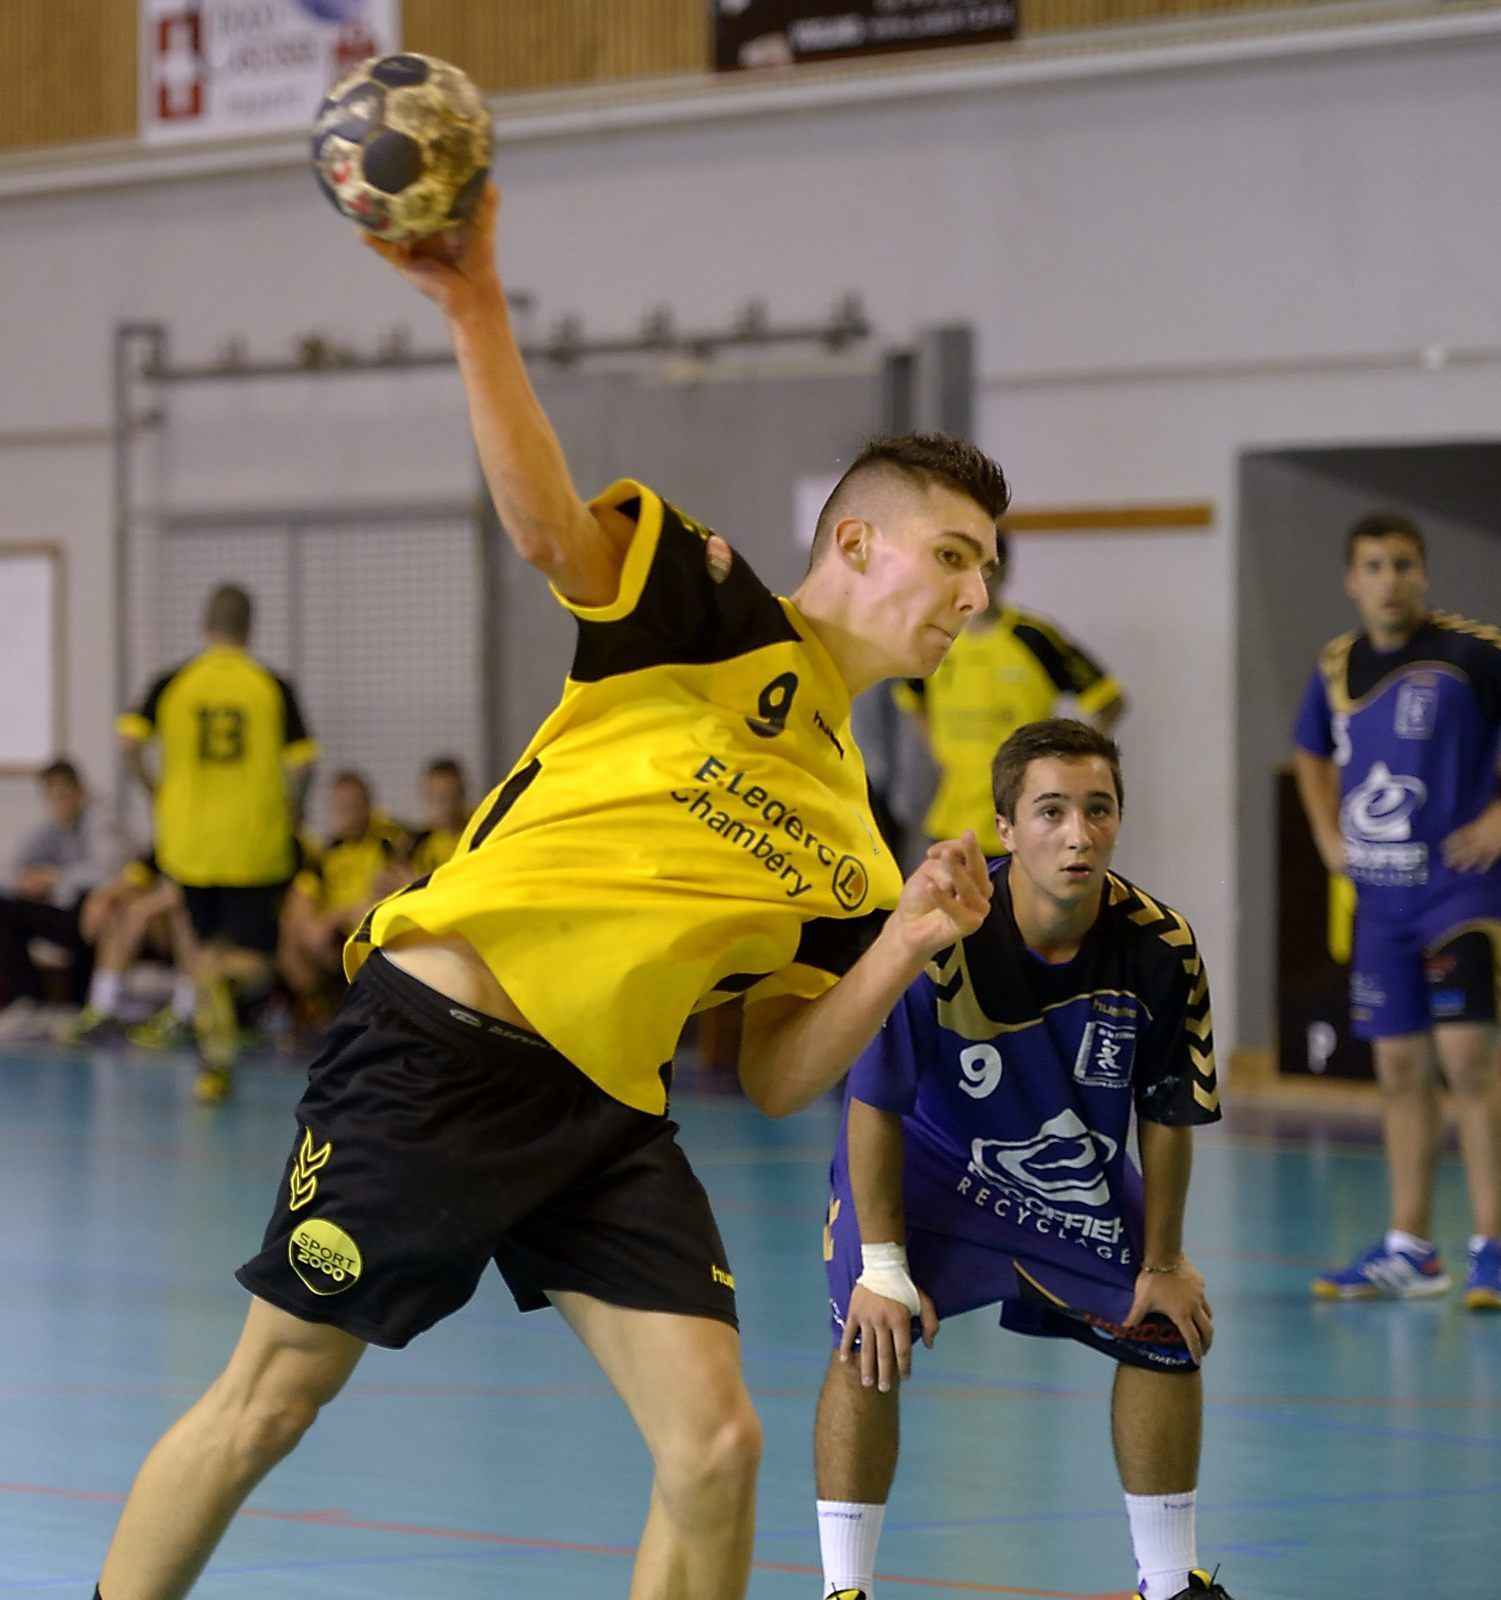 CSH - 19 ligue, mission accomplie